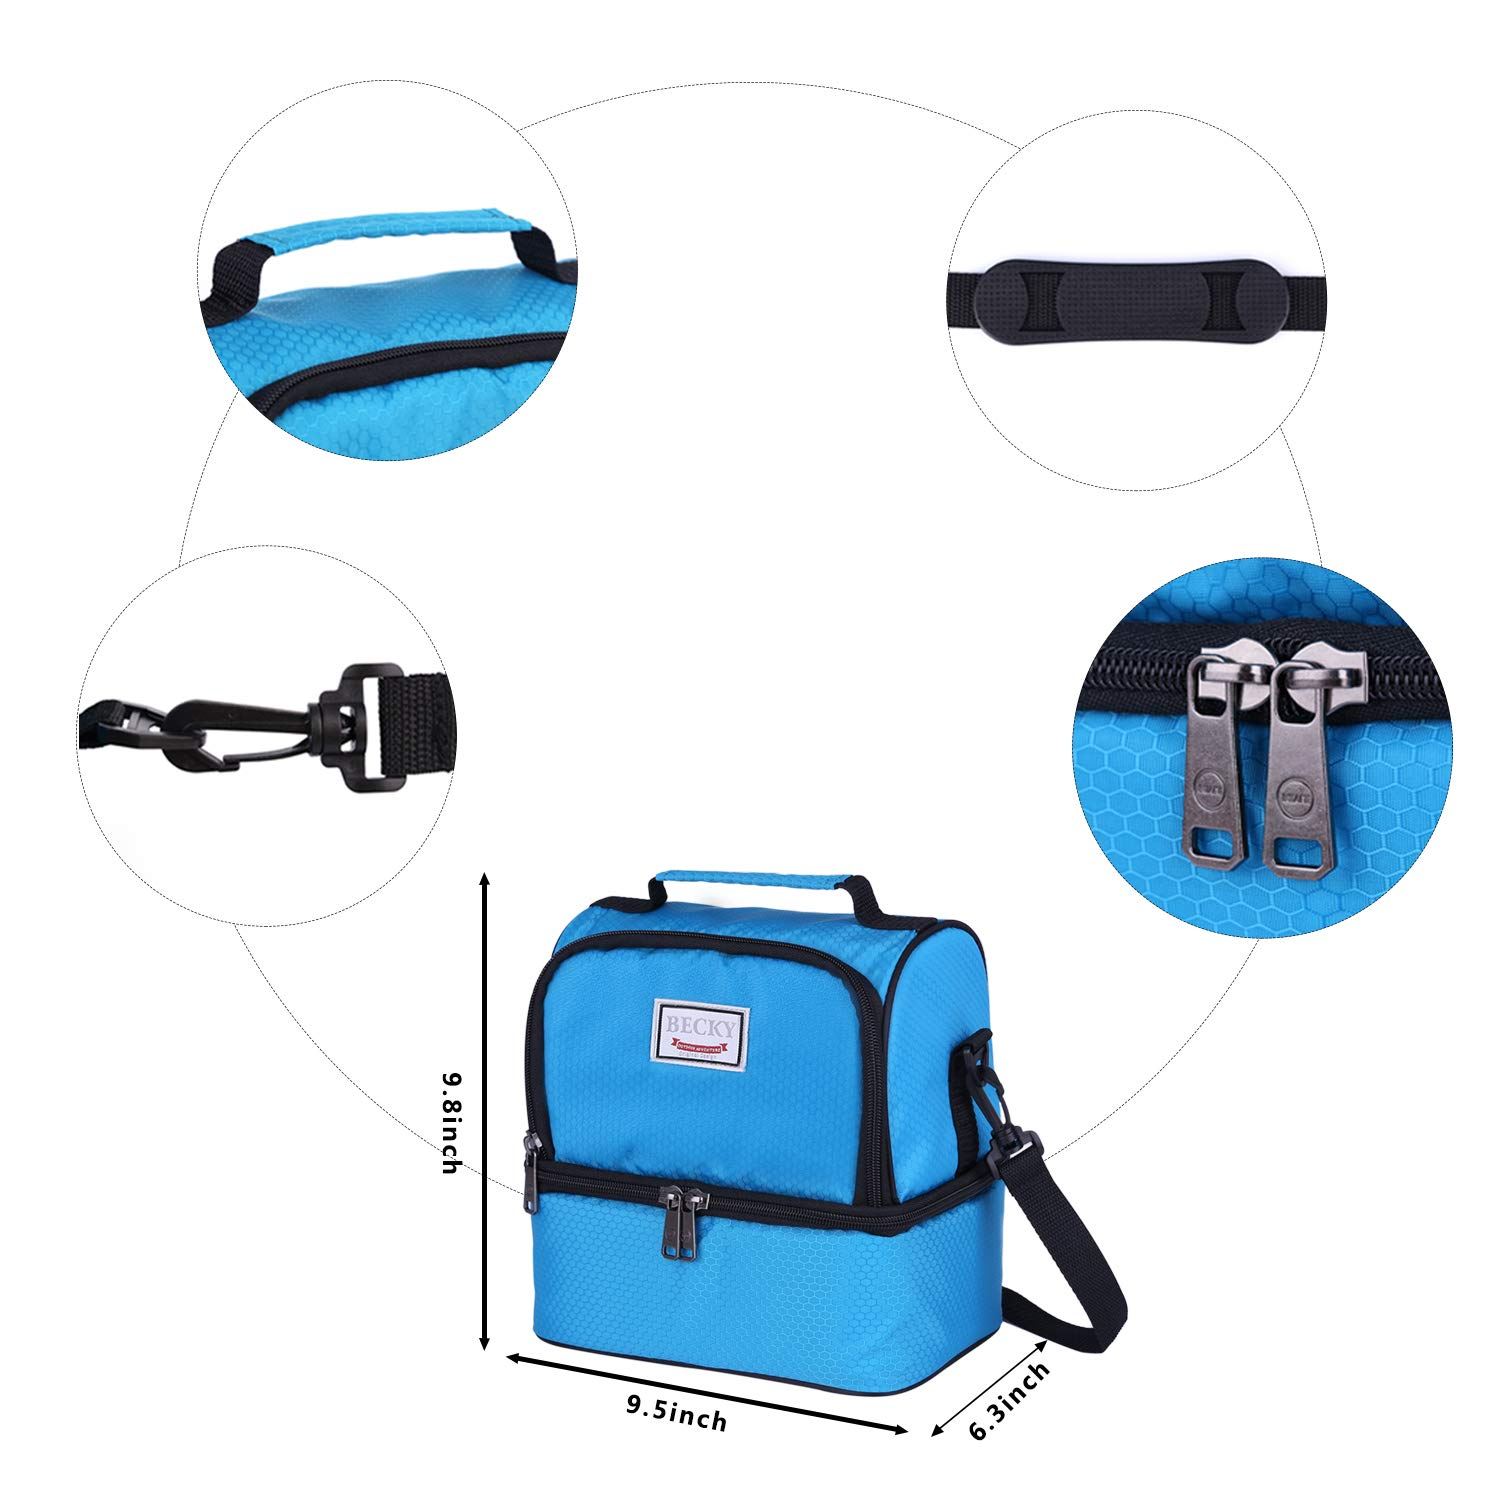 /… Waterproof Large Coole Tote Bag for Work//School//Picnic with Double Deck Spacious Compartments Detachable Shoulder Strap blue Becky lunch box Insulated Lunch Bag for Men /& Women